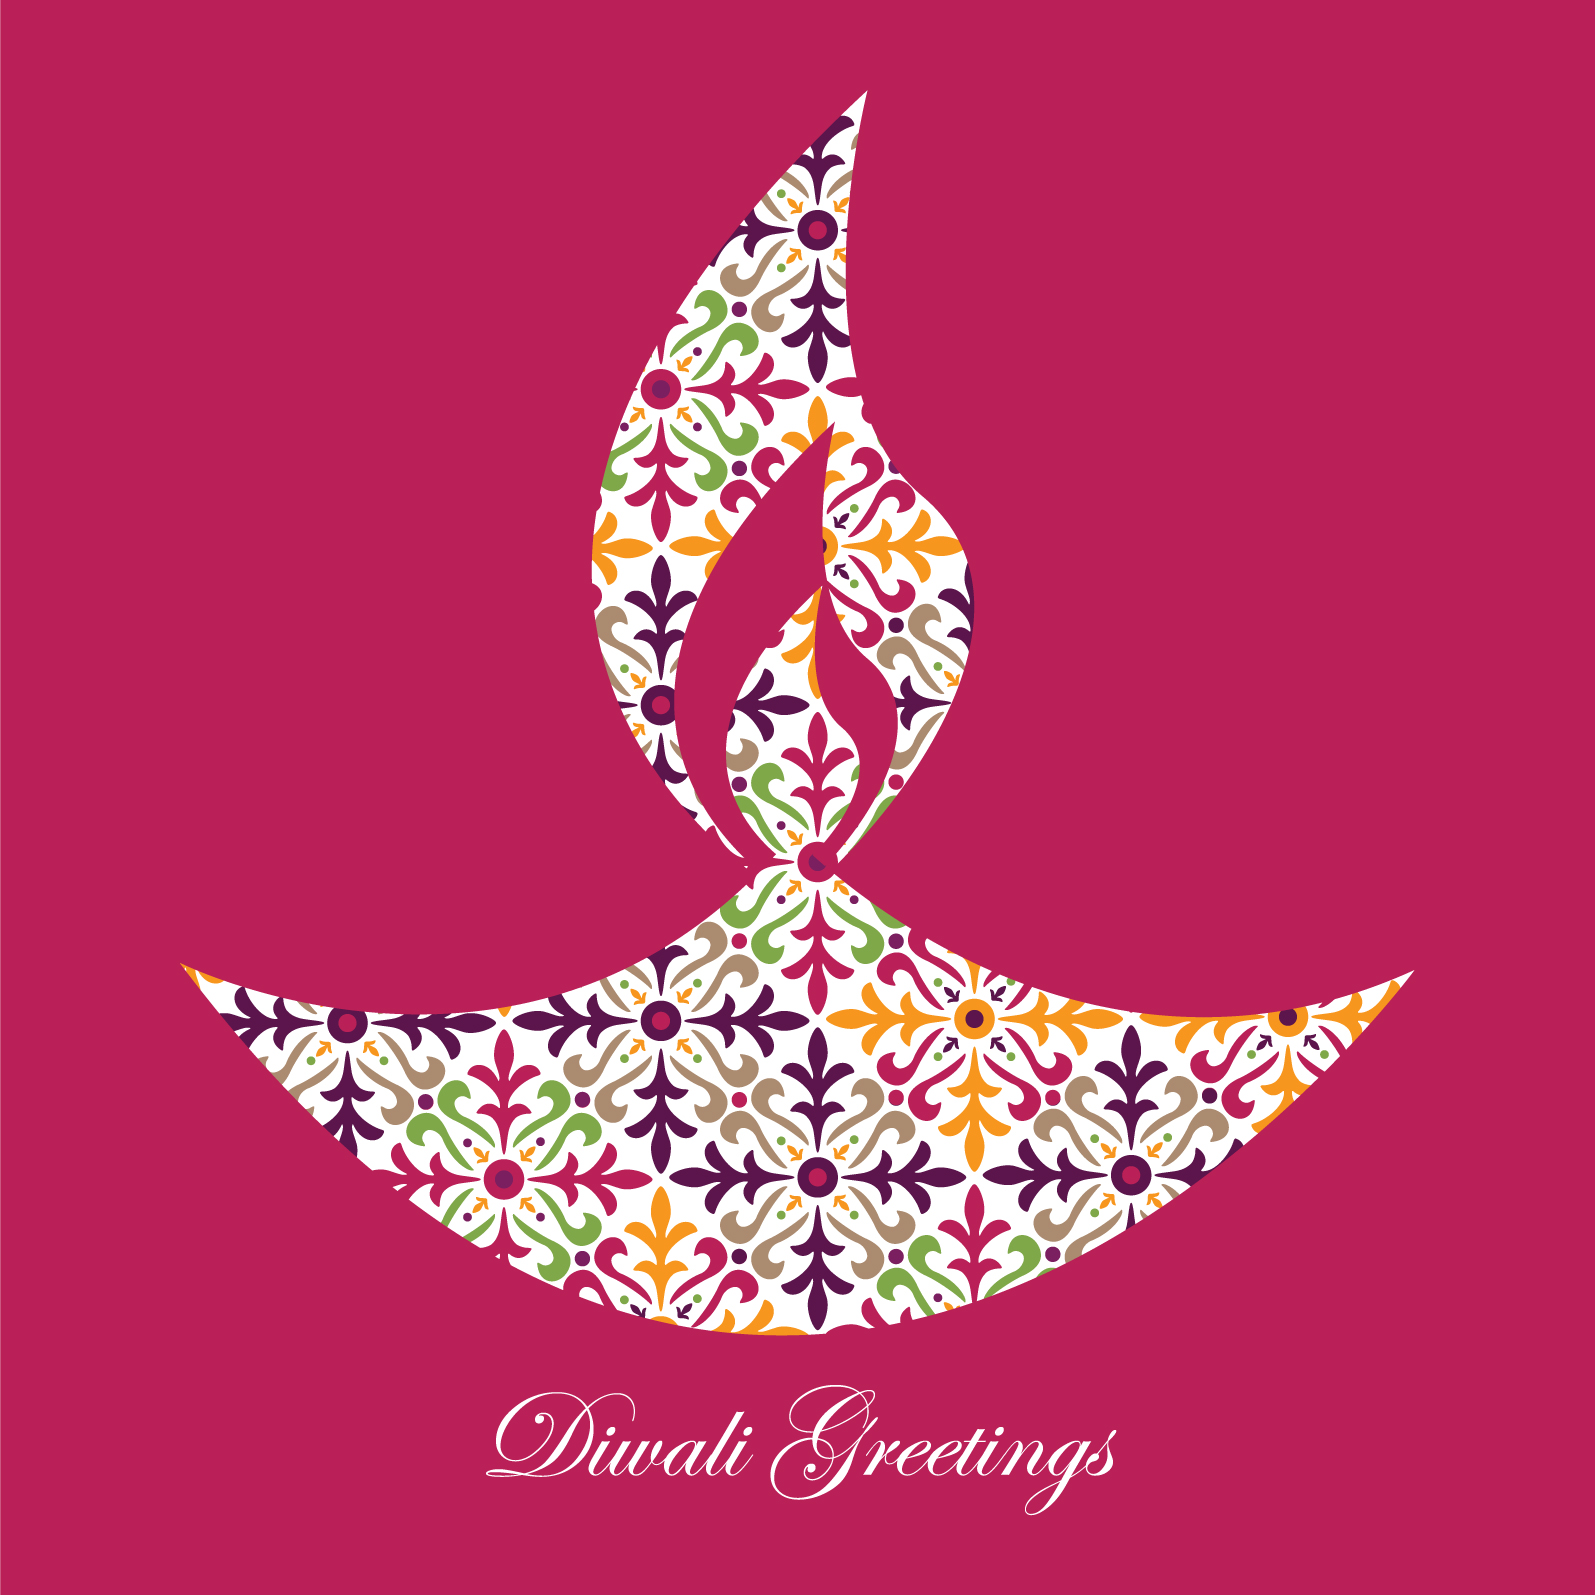 Diwali delights ananya diwali greeting card stopboris Choice Image